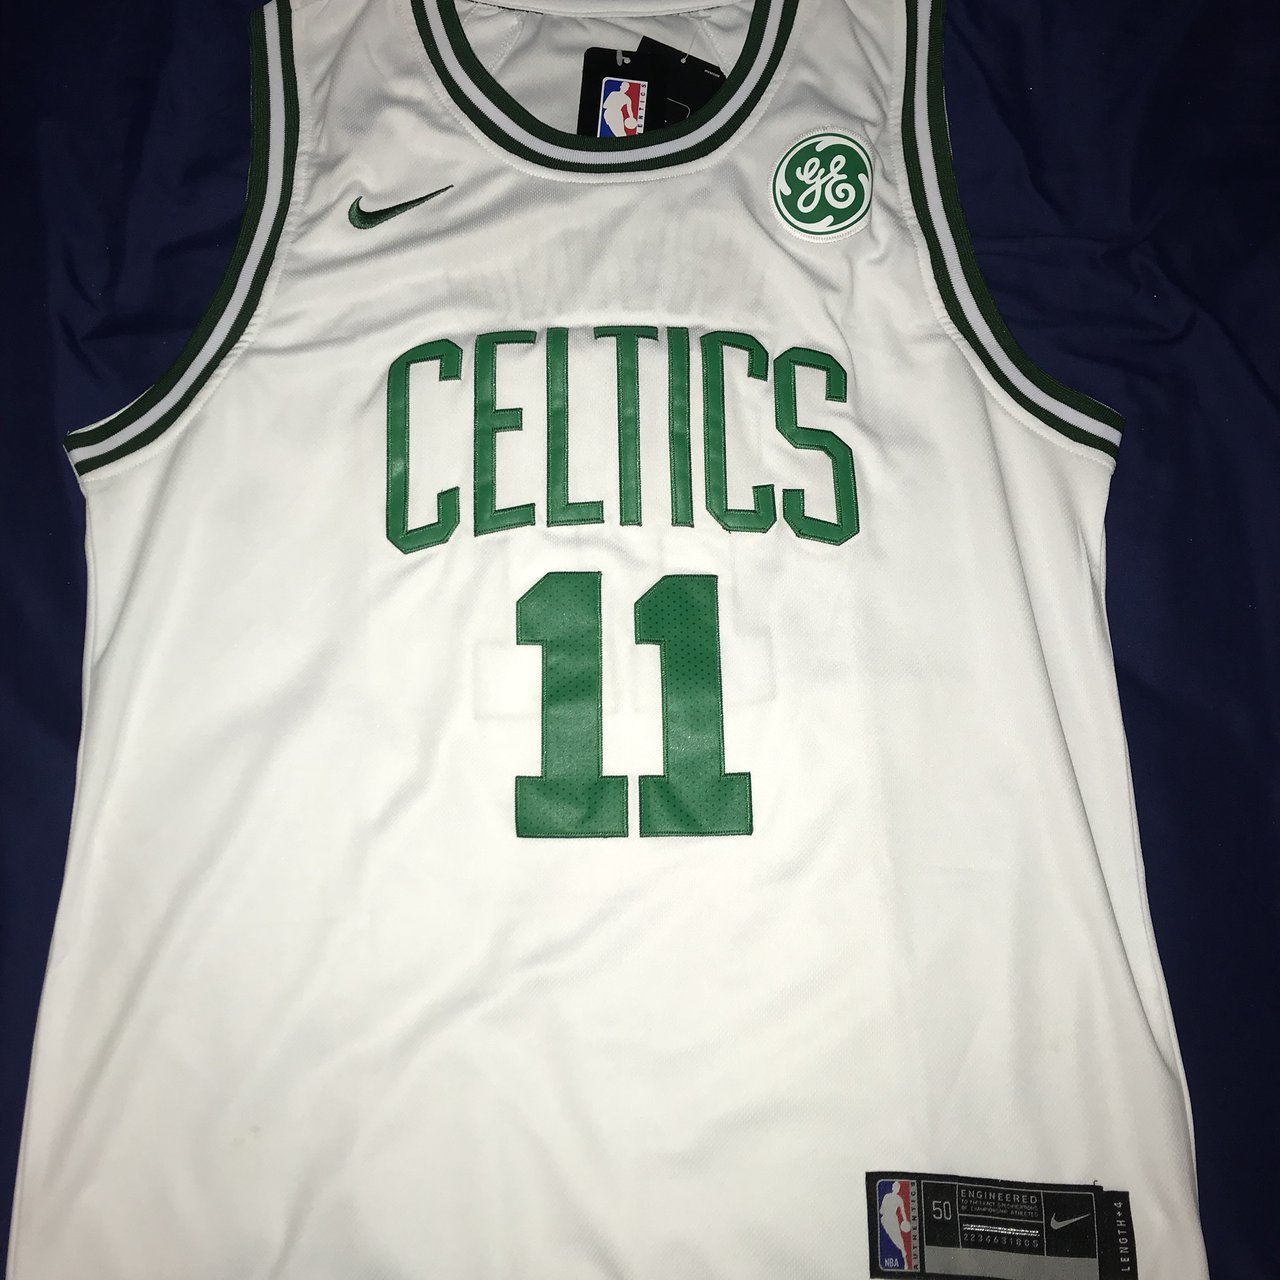 Authentic Fully Stitched White Kyrie Irving Celtics Jersey. - Depop 63a67d015